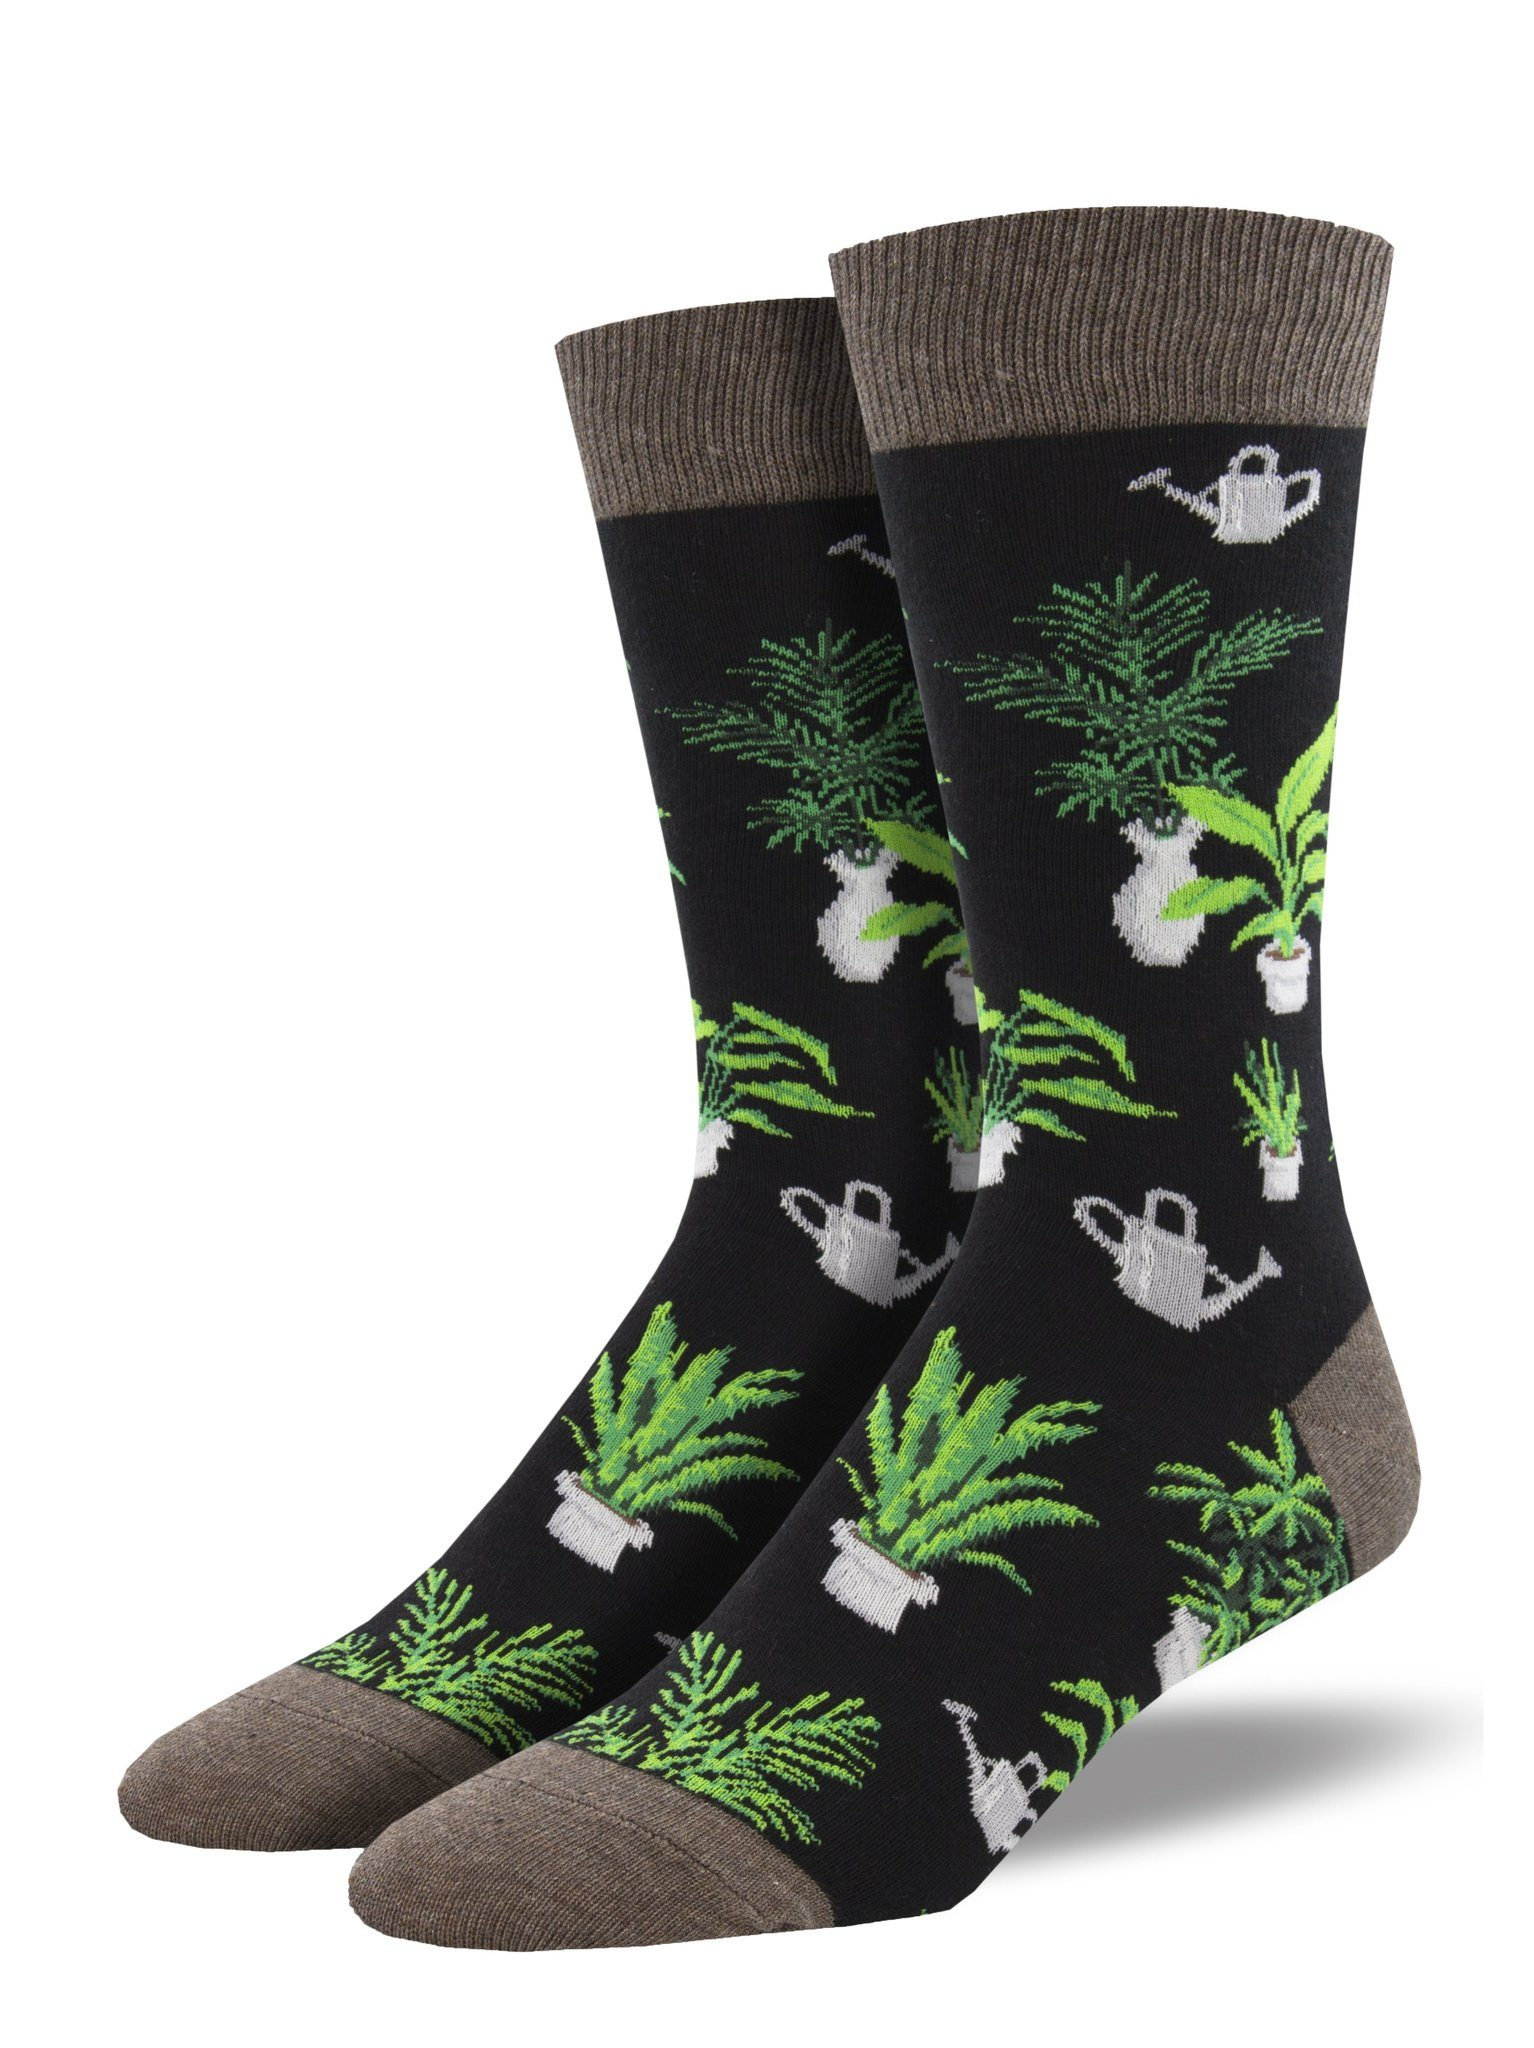 Socksmith - Home Grown Crew Socks | Men's - Knock Your Socks Off